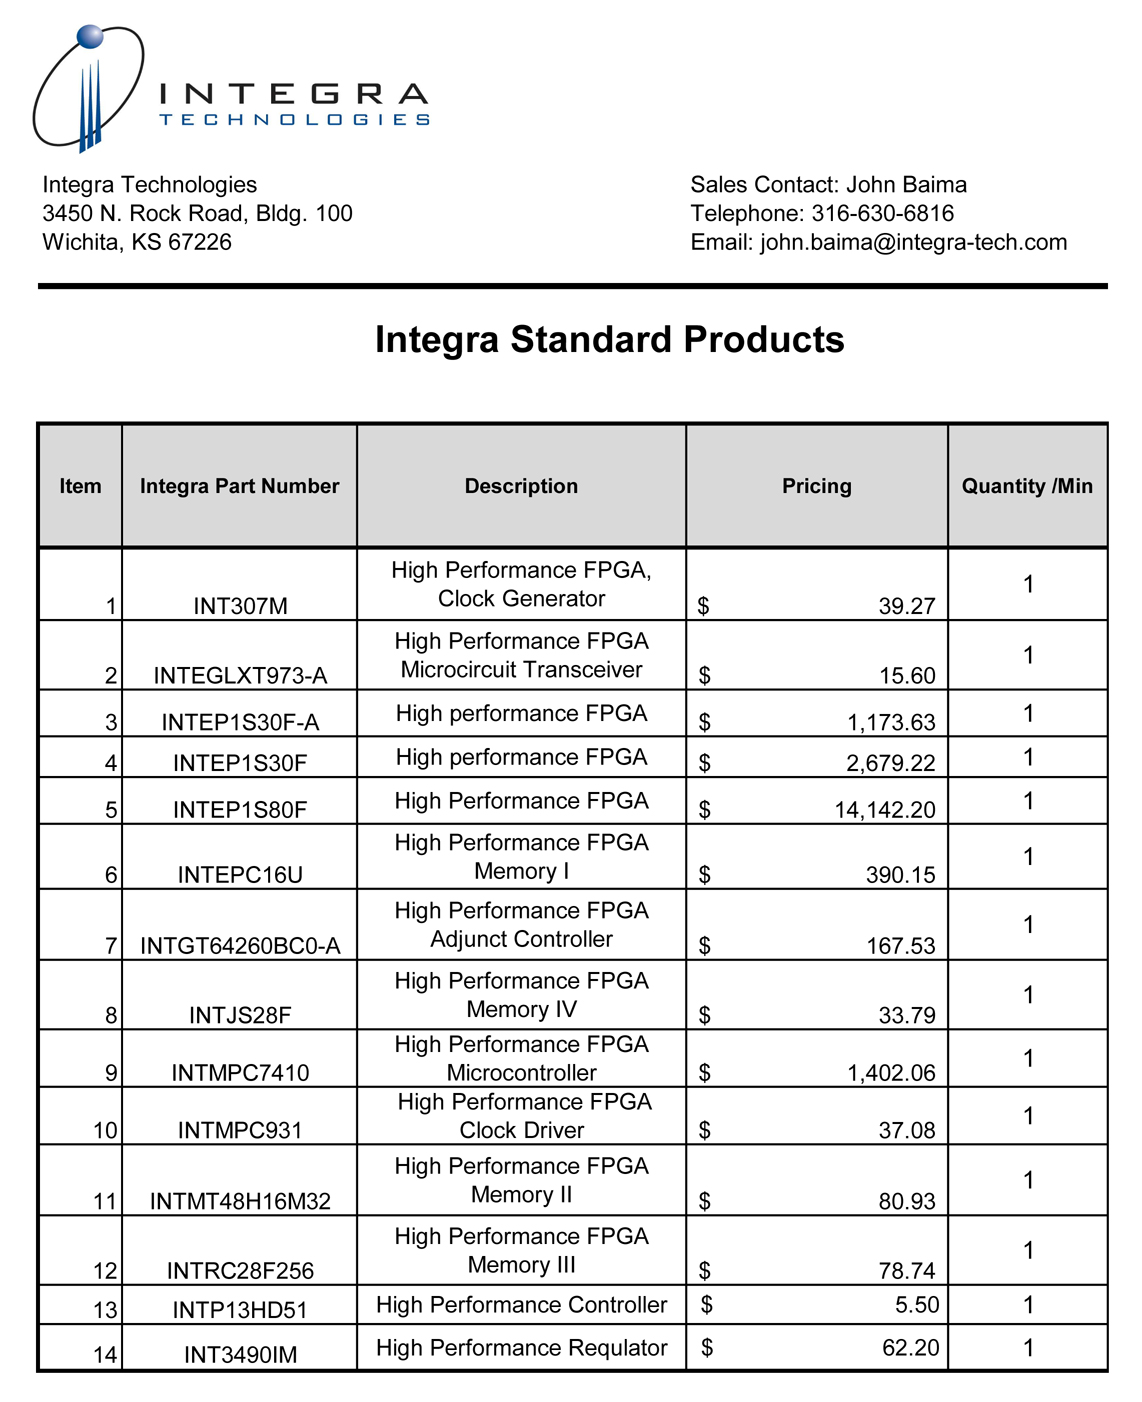 integra-standard-products01-2020